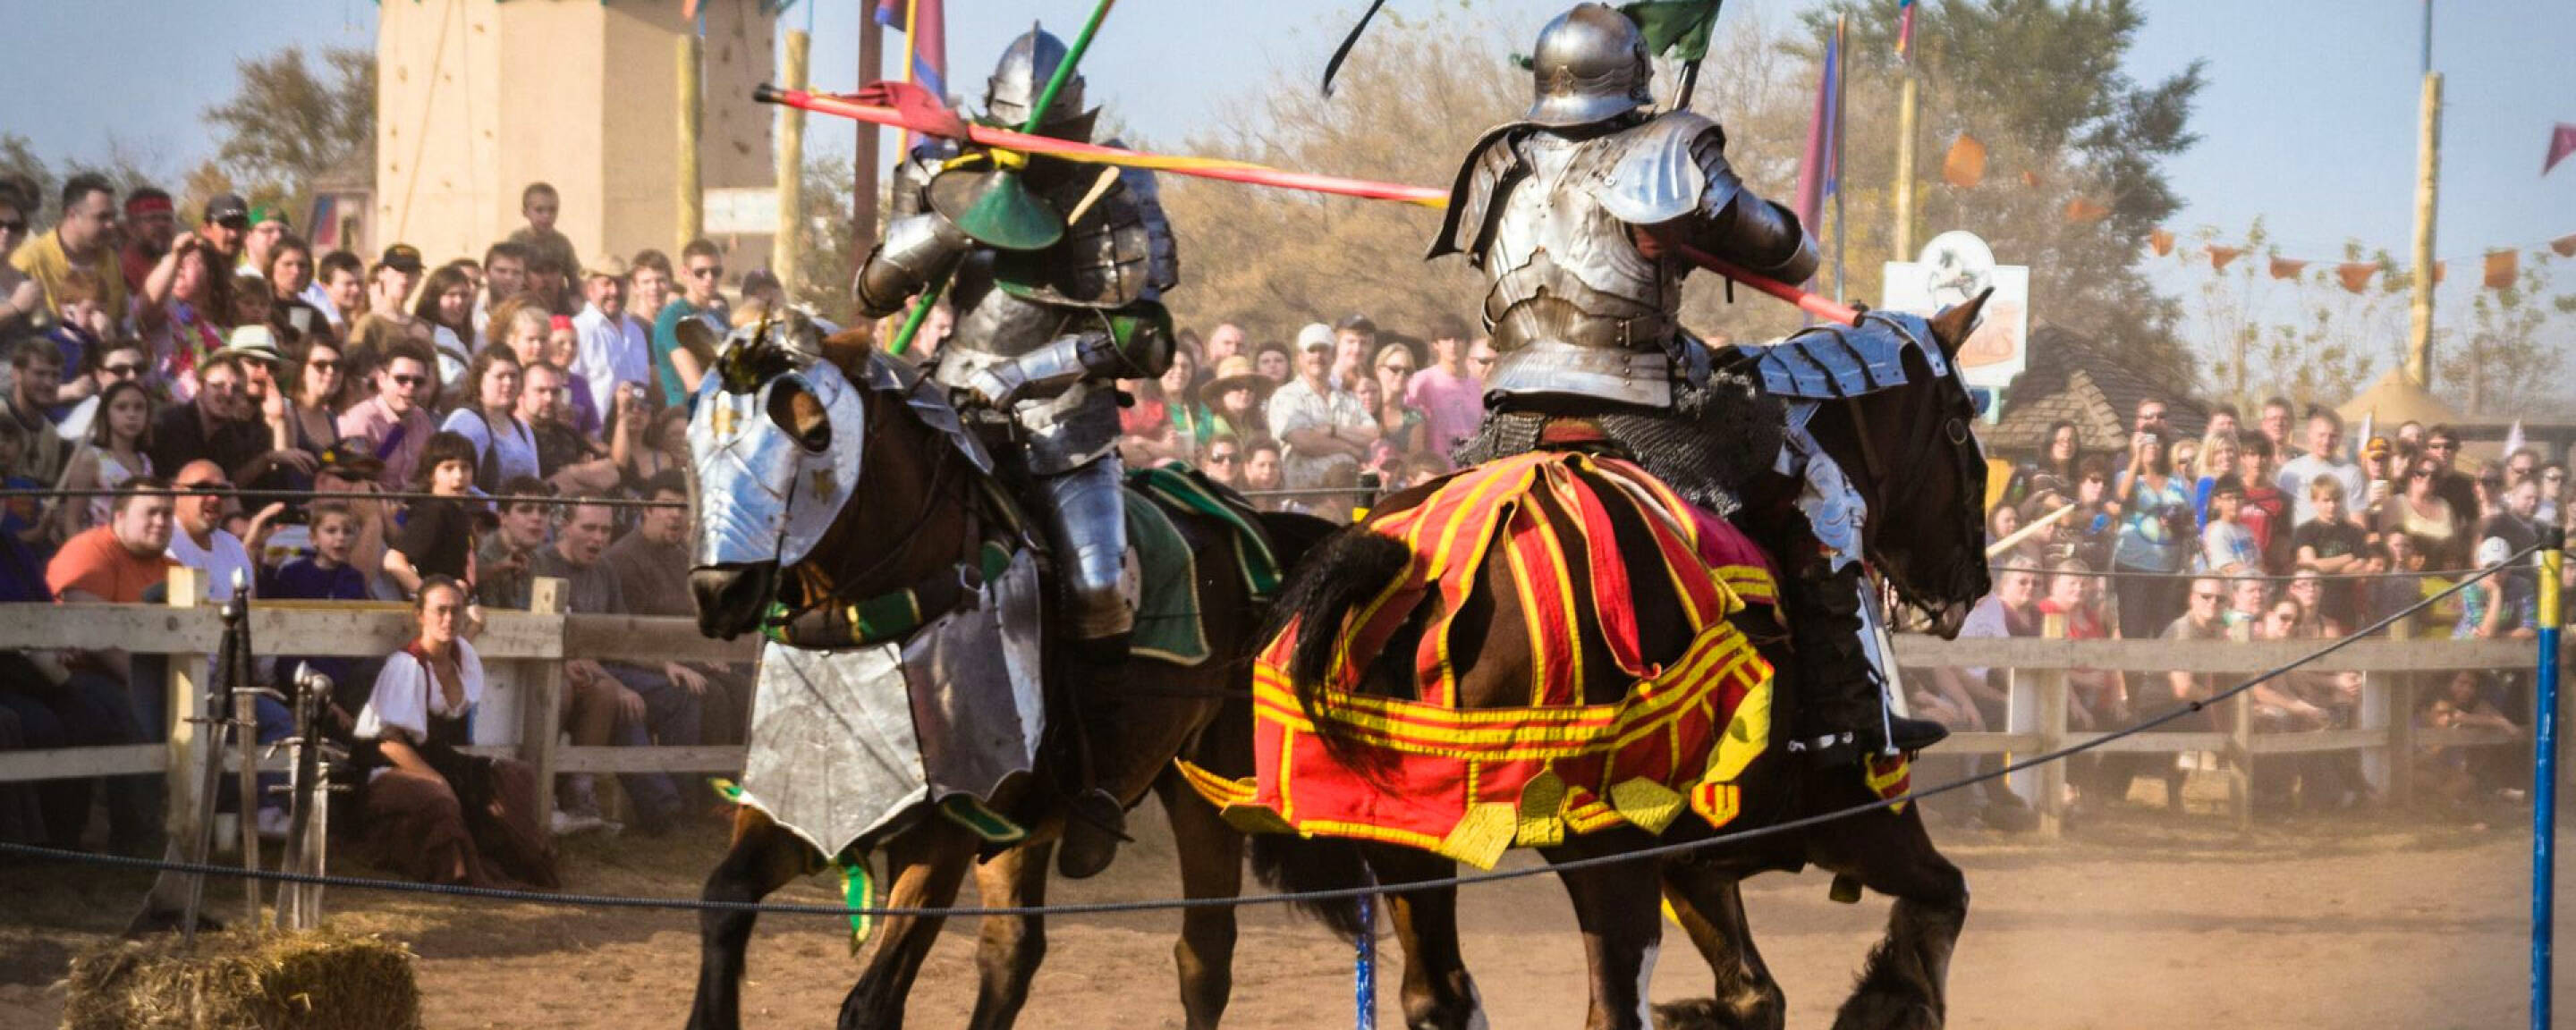 10 Of The Best Food Festivals In Texas |Renaissance Festival Food Ideas